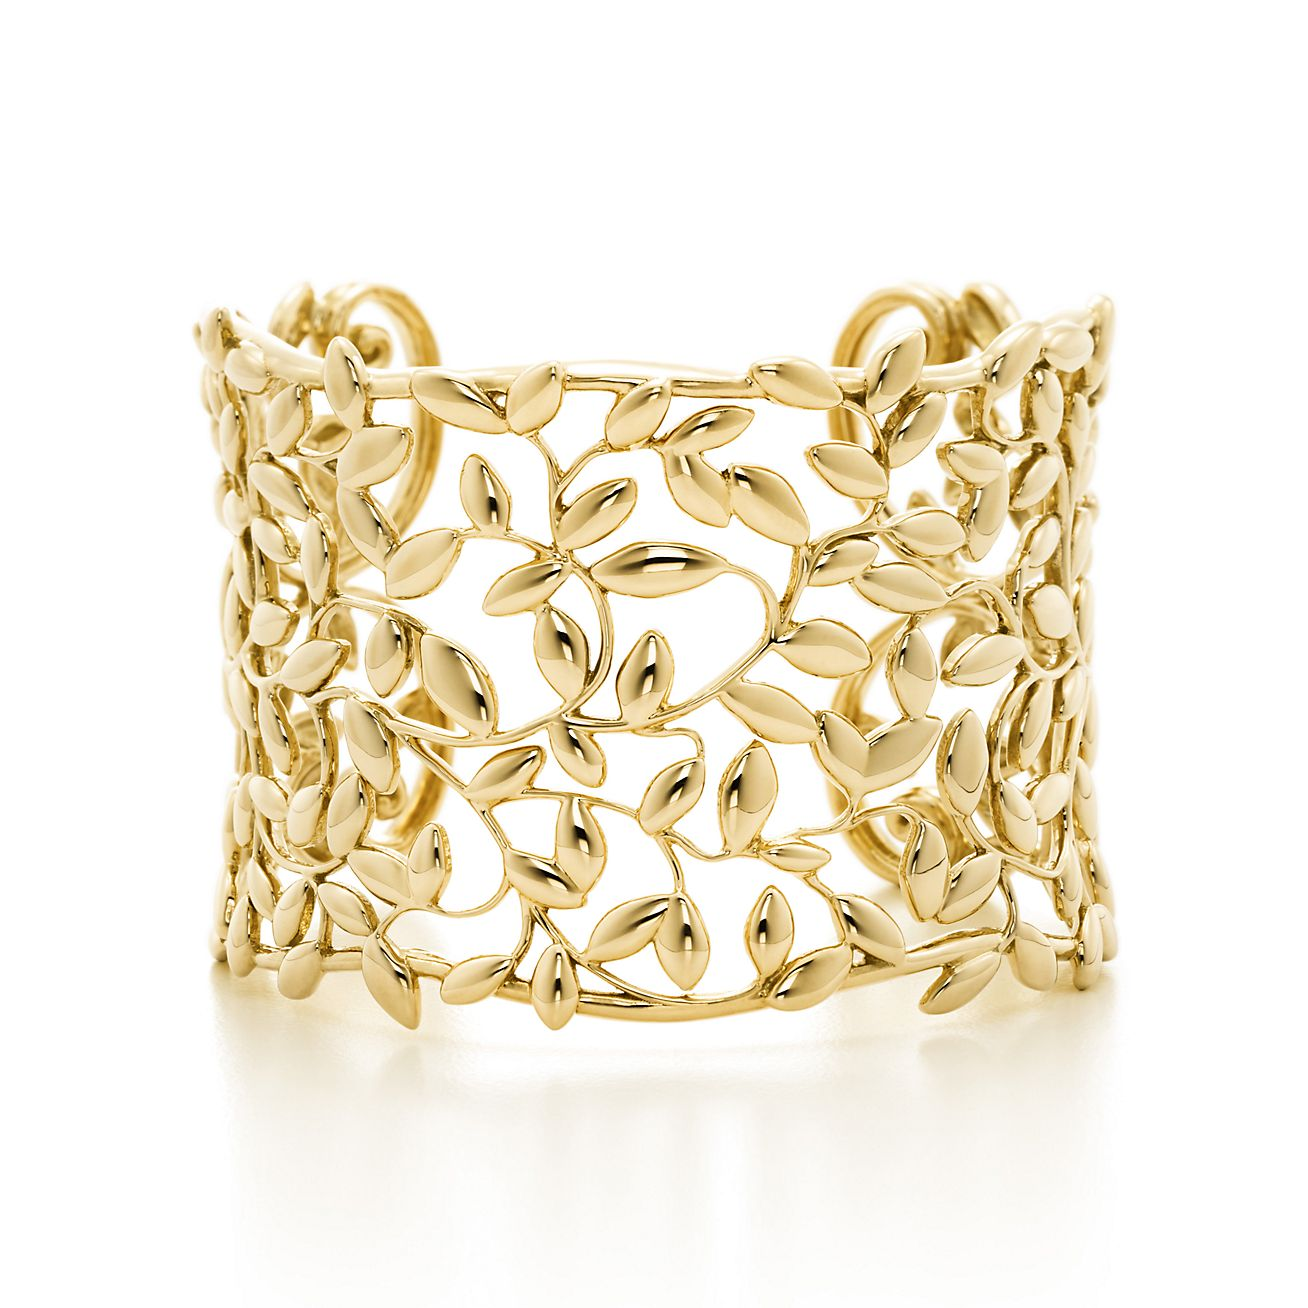 \u039flive is a symbol of peace,protection and fertility Two Real olive leaves gold /& sterling silver 925 \u039fpen cuff bracelet by Mother Nature